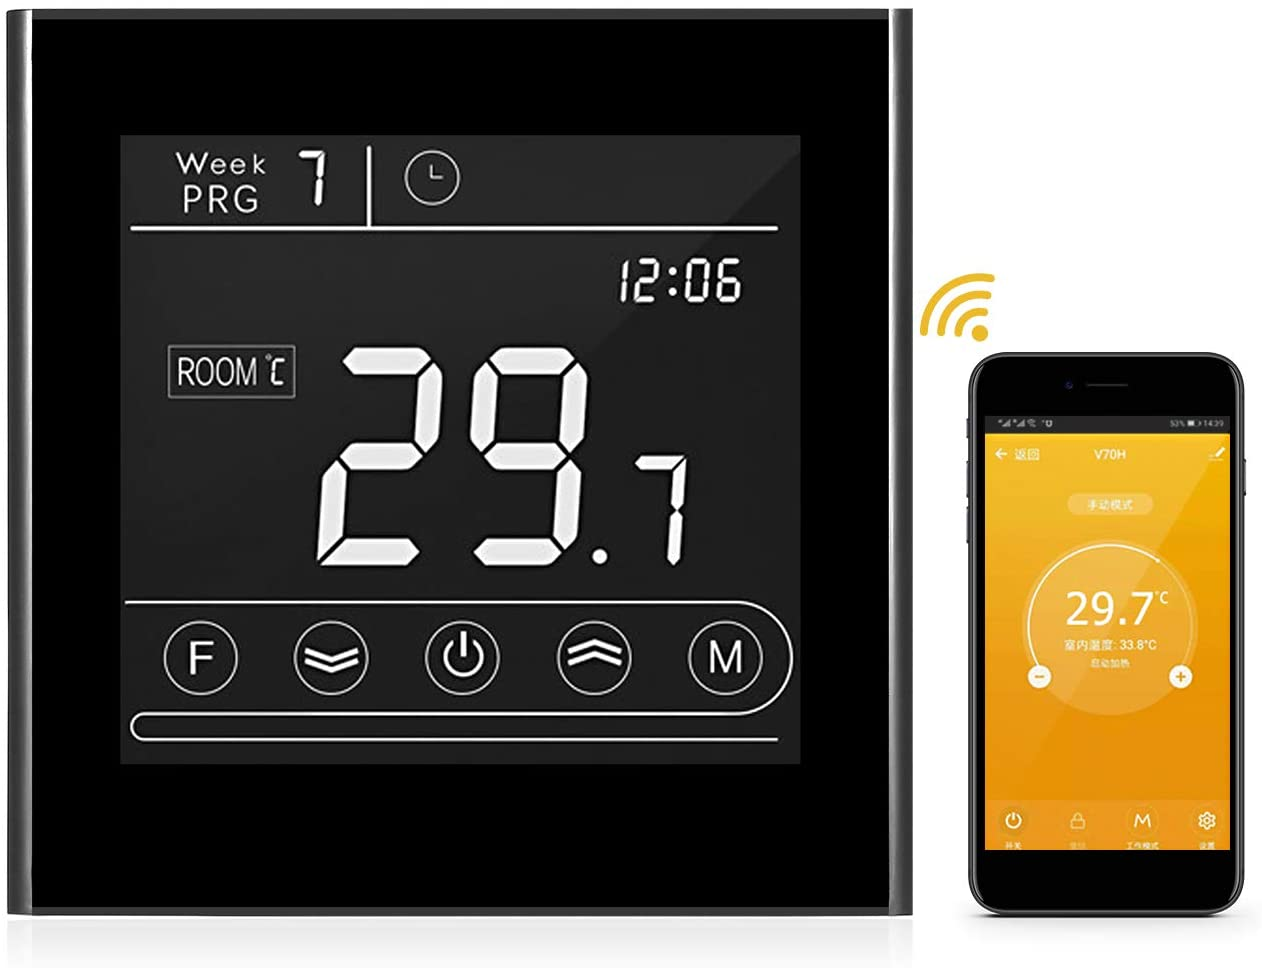 Gas Boiler Thermostat,KKmoon Smart Wifi Thermostat Programmable Gas Boiler Thermostat Temperature Controller LED Display Touchscreen Backlight Remote Control Anti-freeze Function Replacement